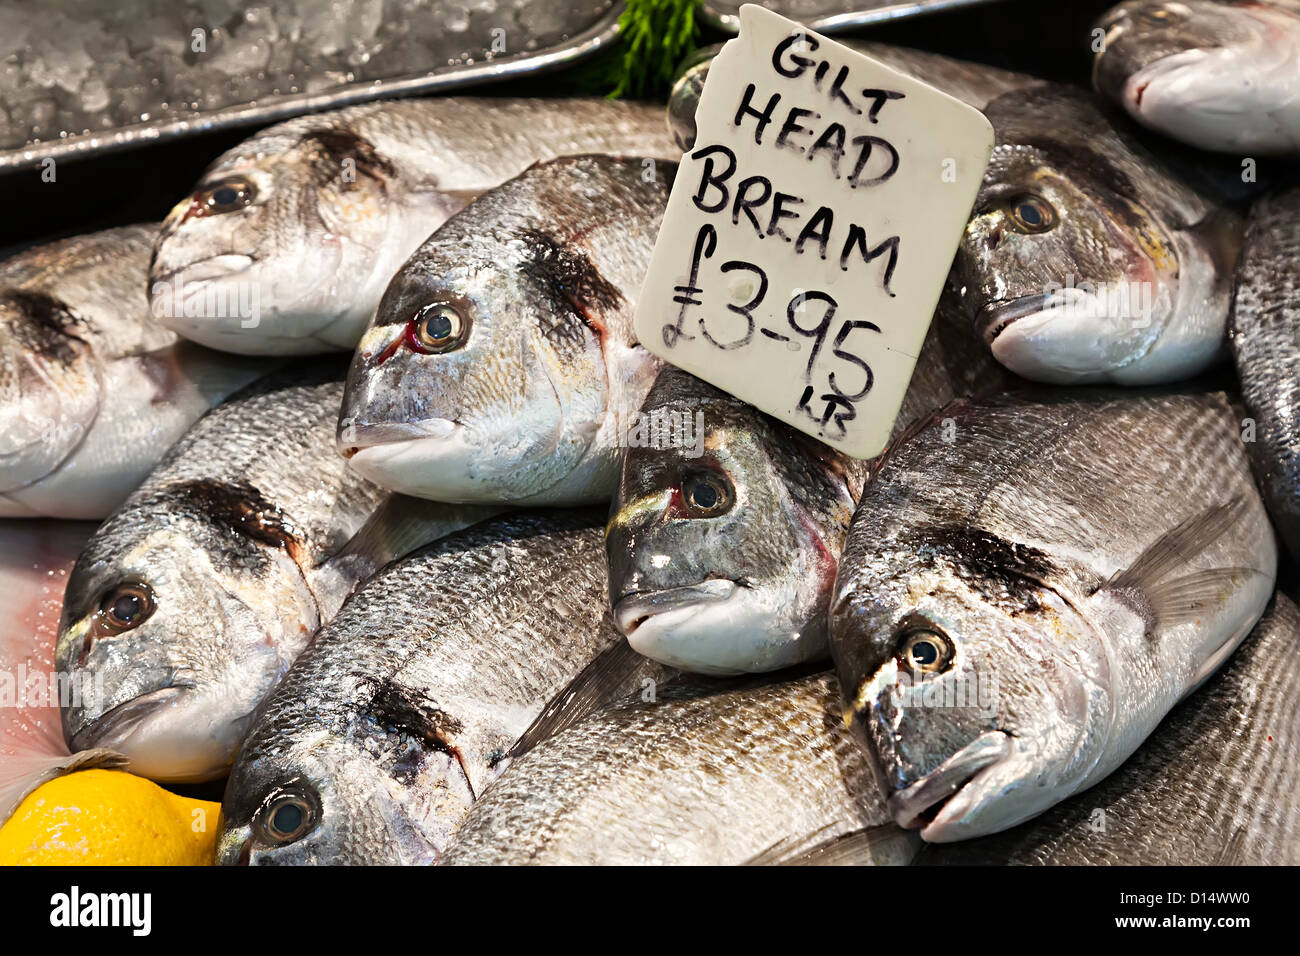 Gilt head bream fish on sale on fishmonger stall in market, St Hellier, Jersey, Channel islands, uk - Stock Image